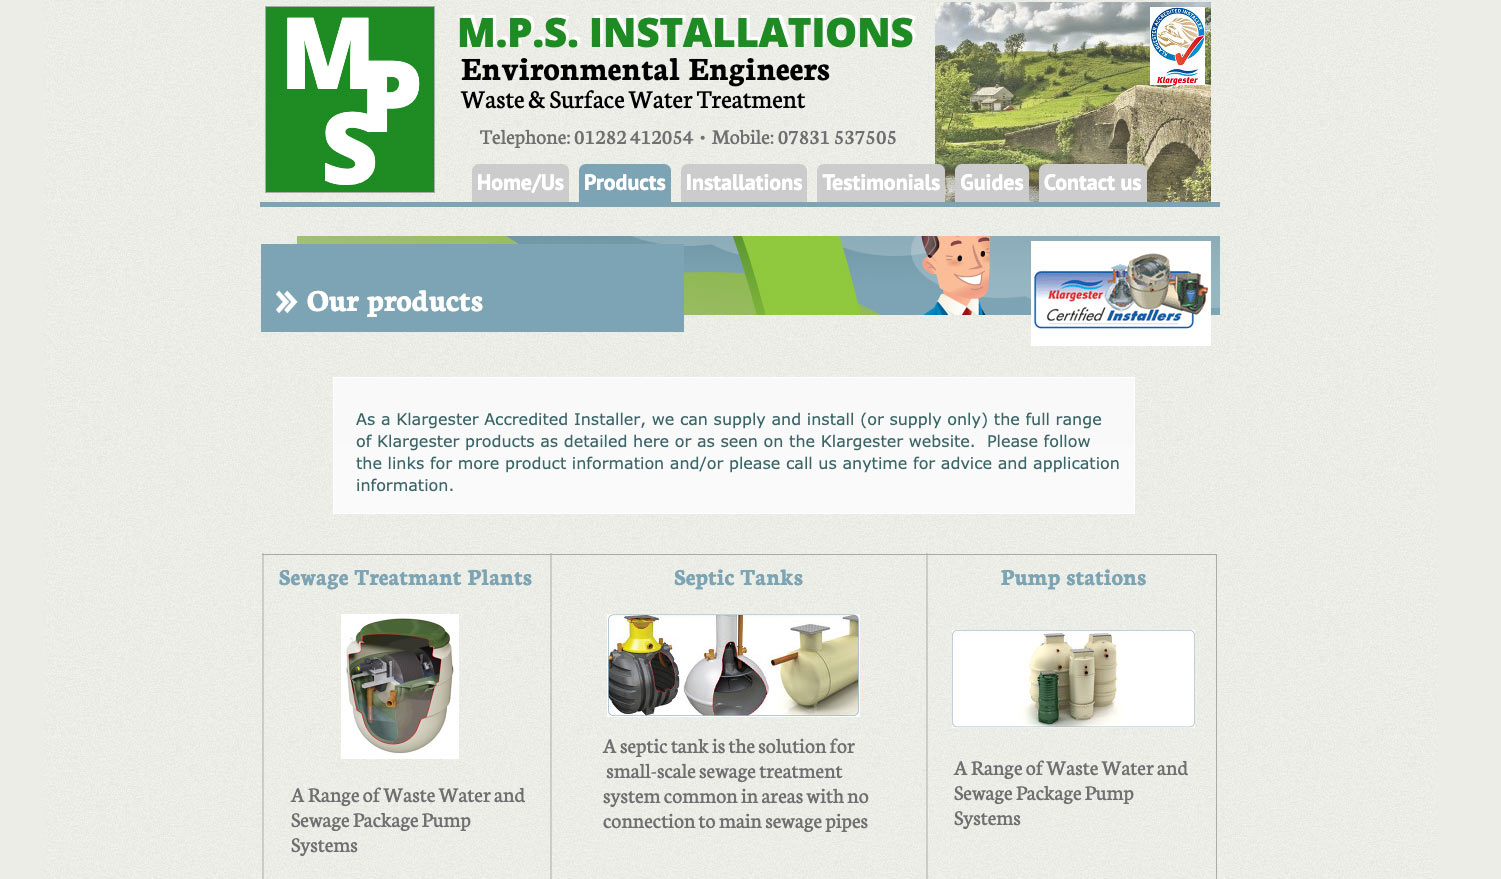 MPS Installations